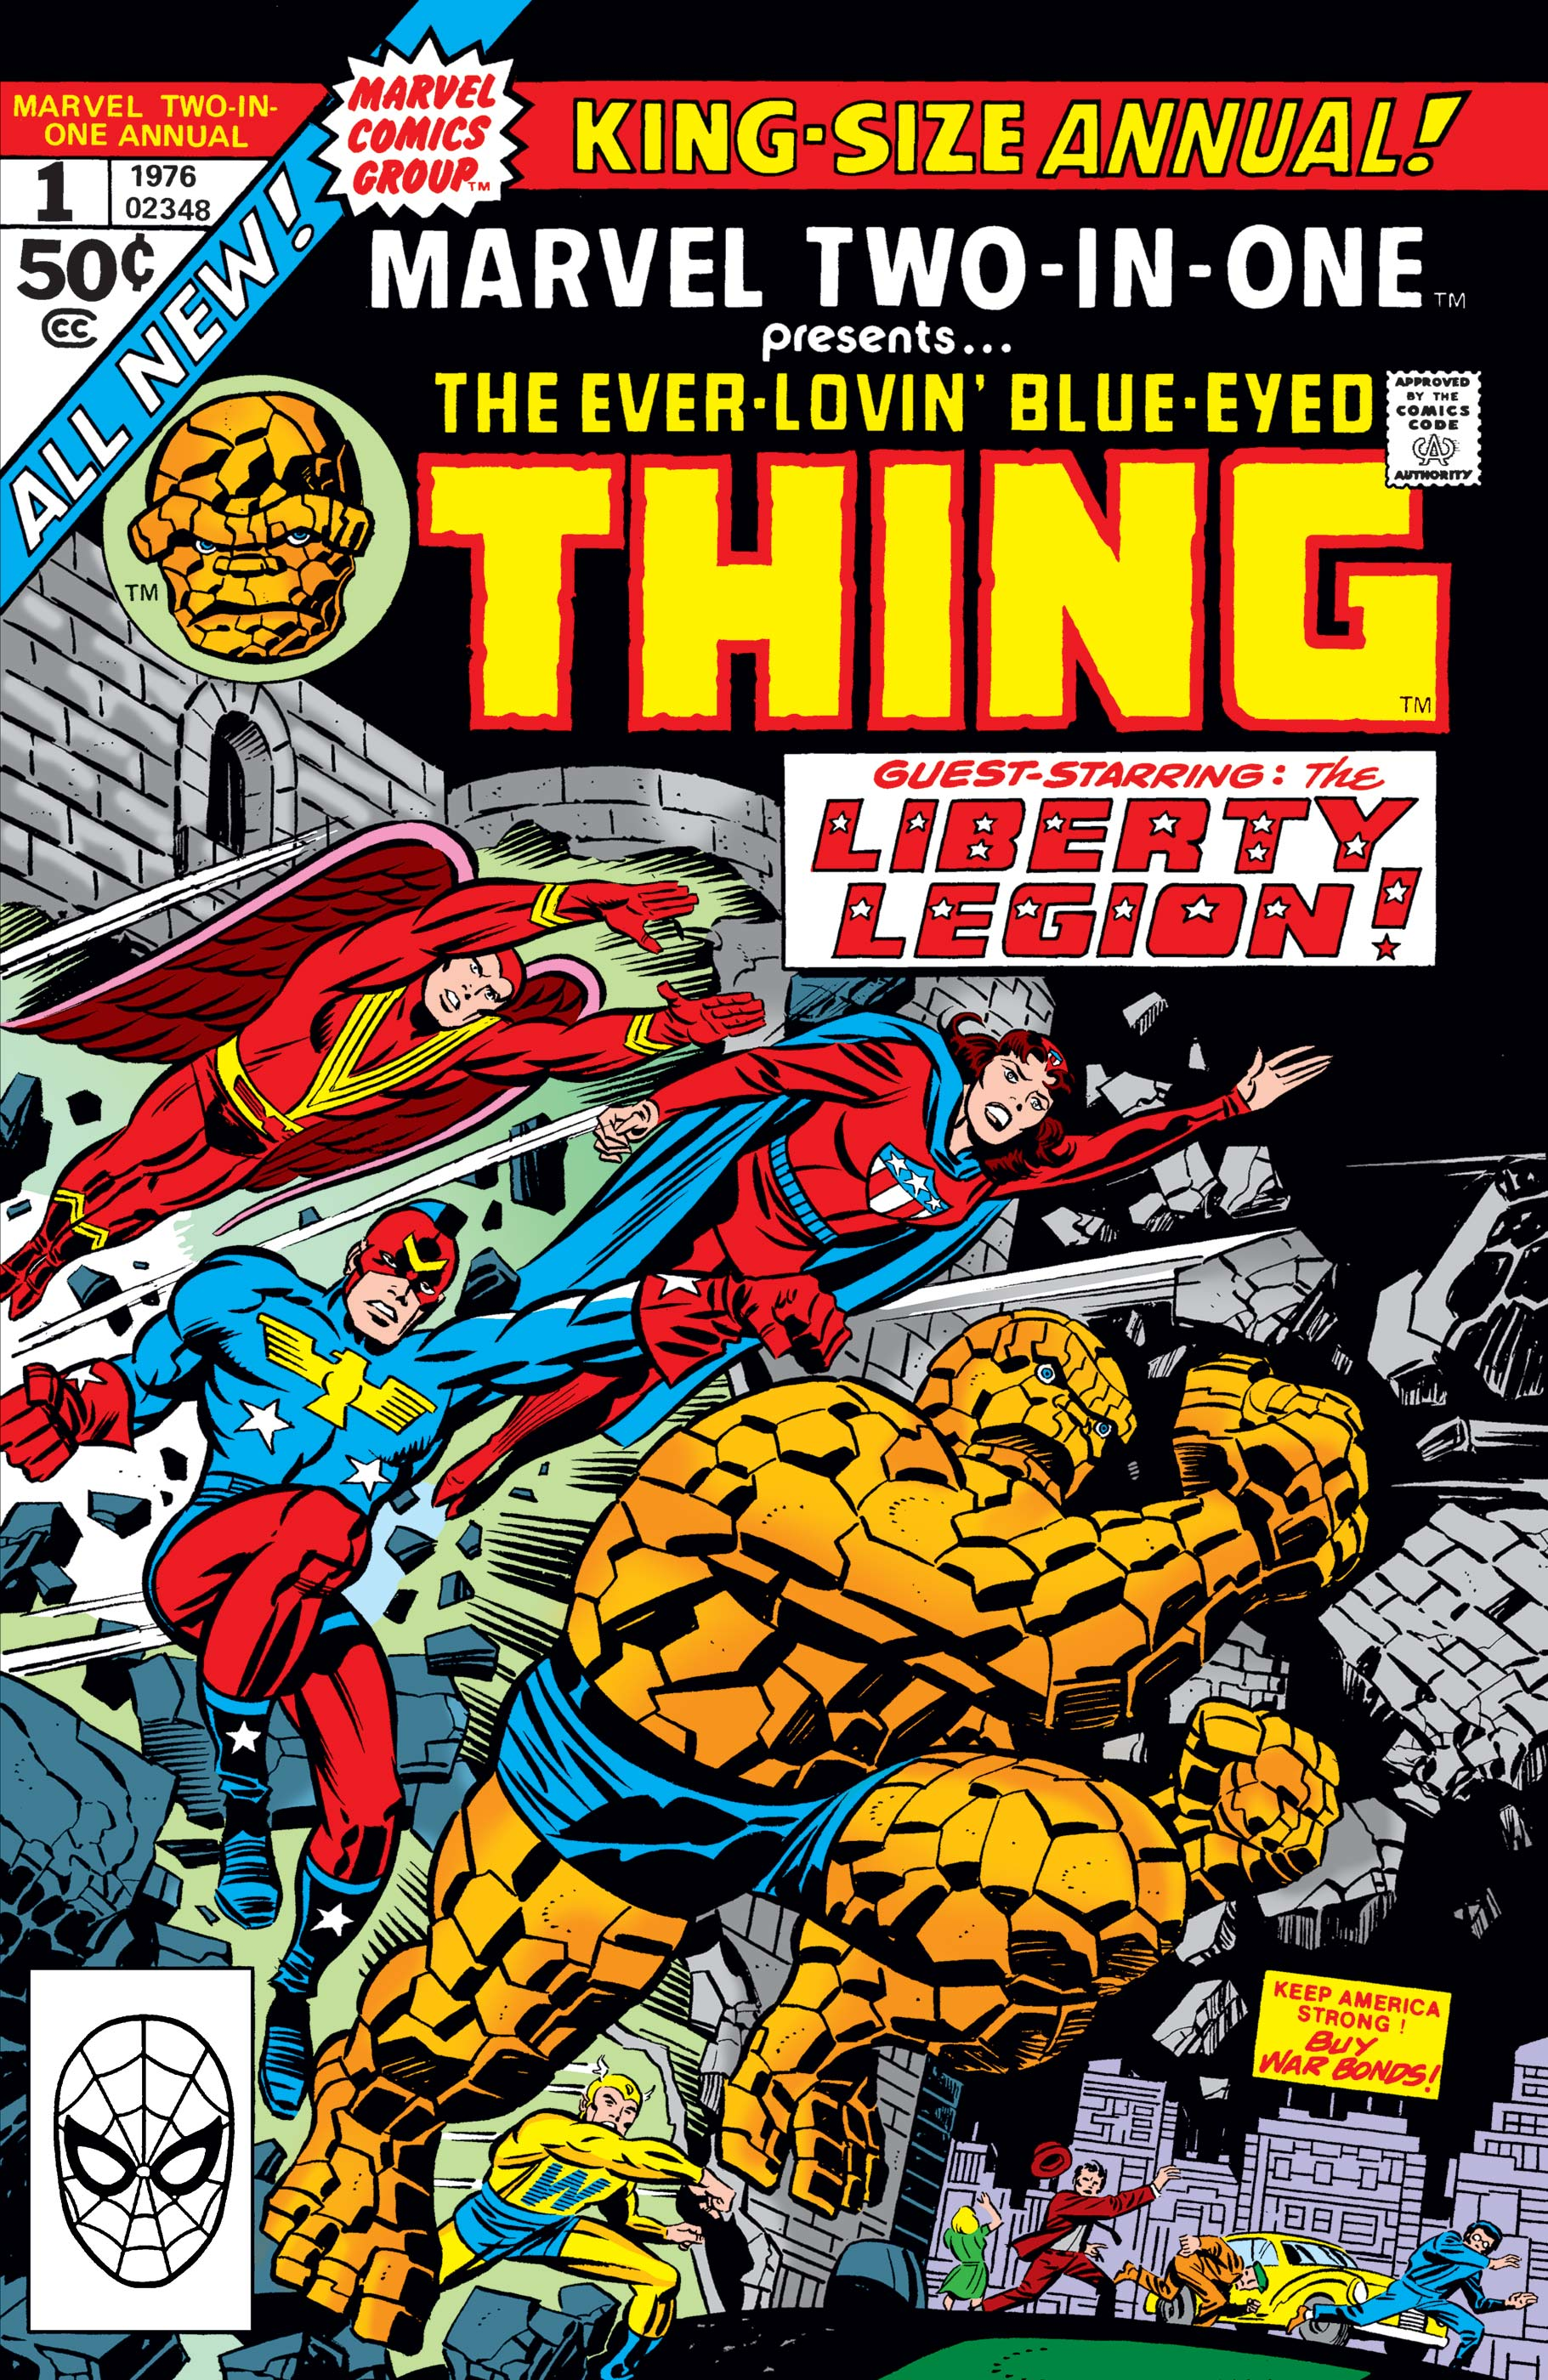 Marvel Two-in-One Annual (1976) #1